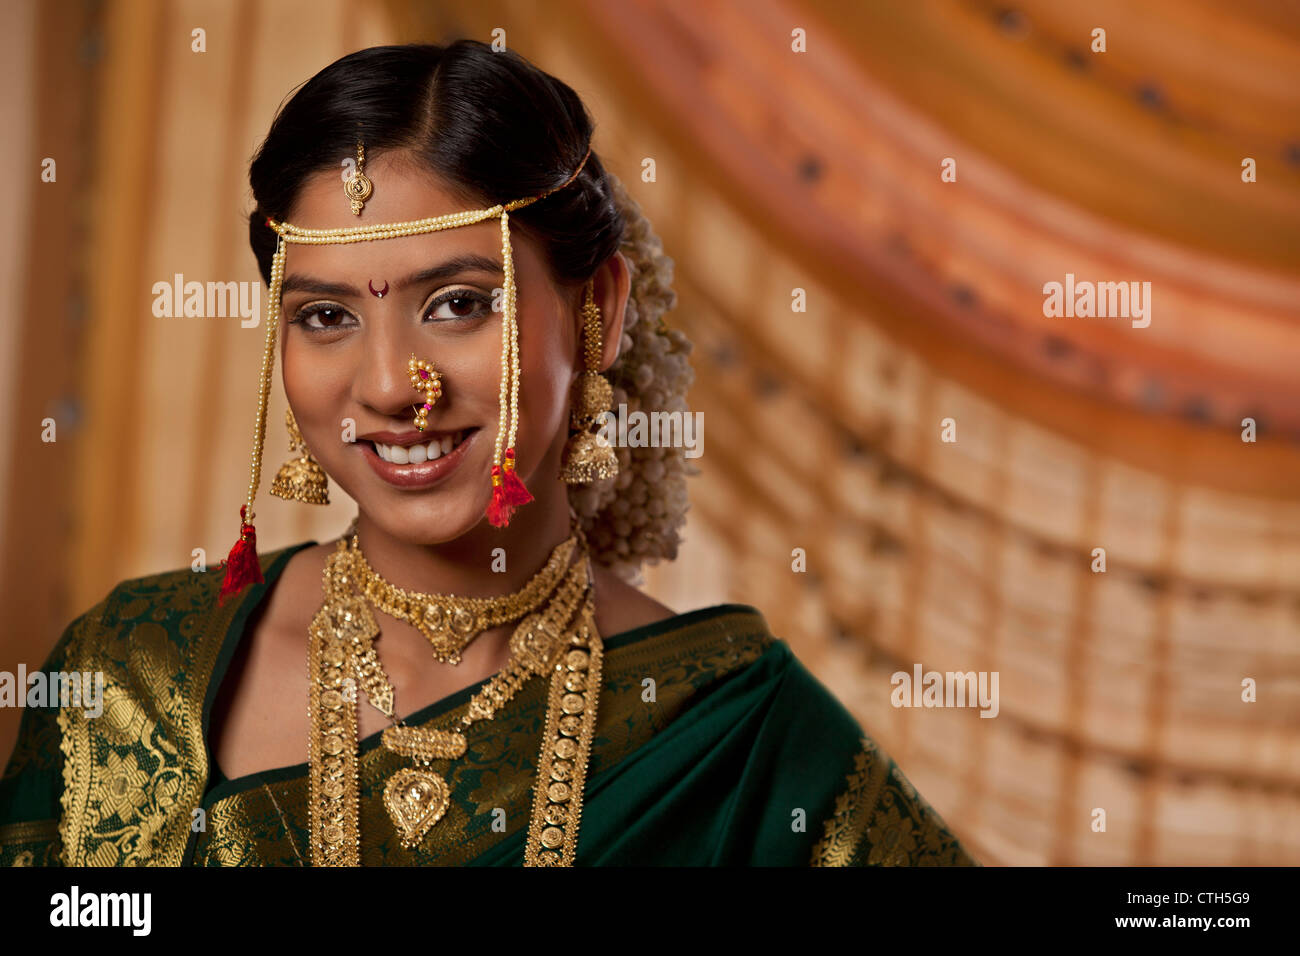 Portrait of young bride dressed up in Marathi style - Stock Image